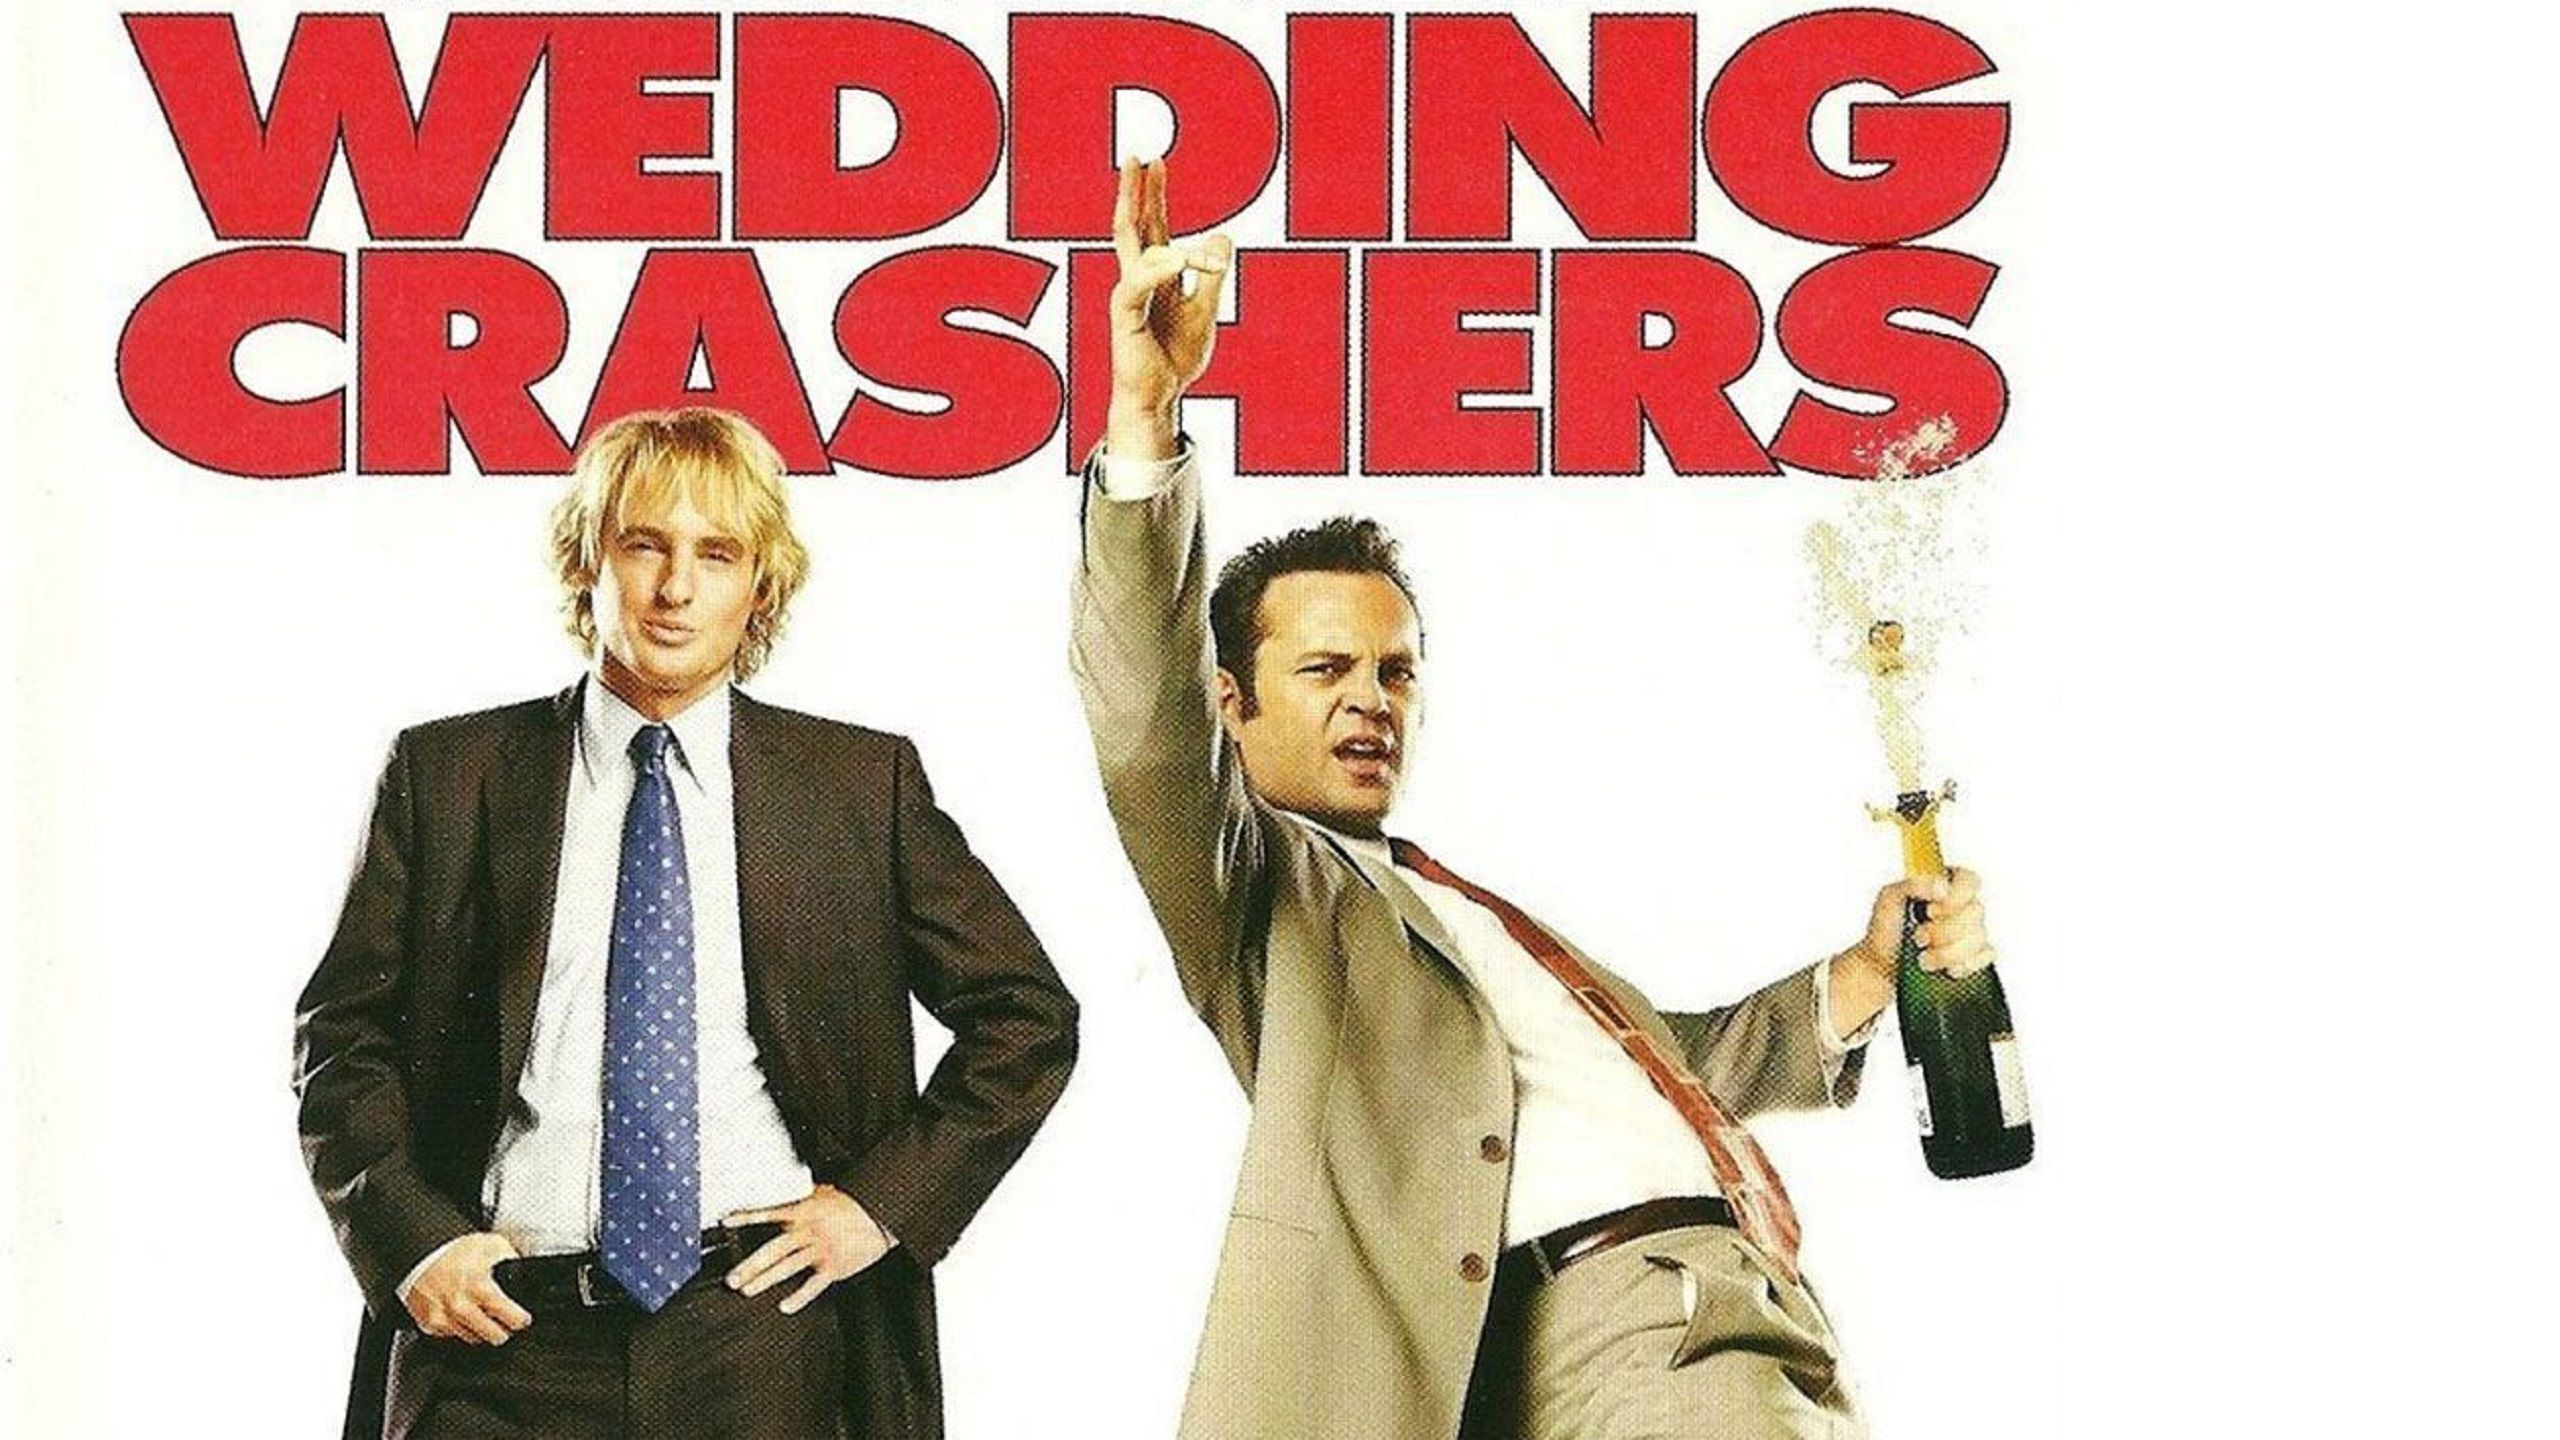 Wedding Crashers - 2 Single a Nozze (2005) with Owen Wilson and Vince Vaughn